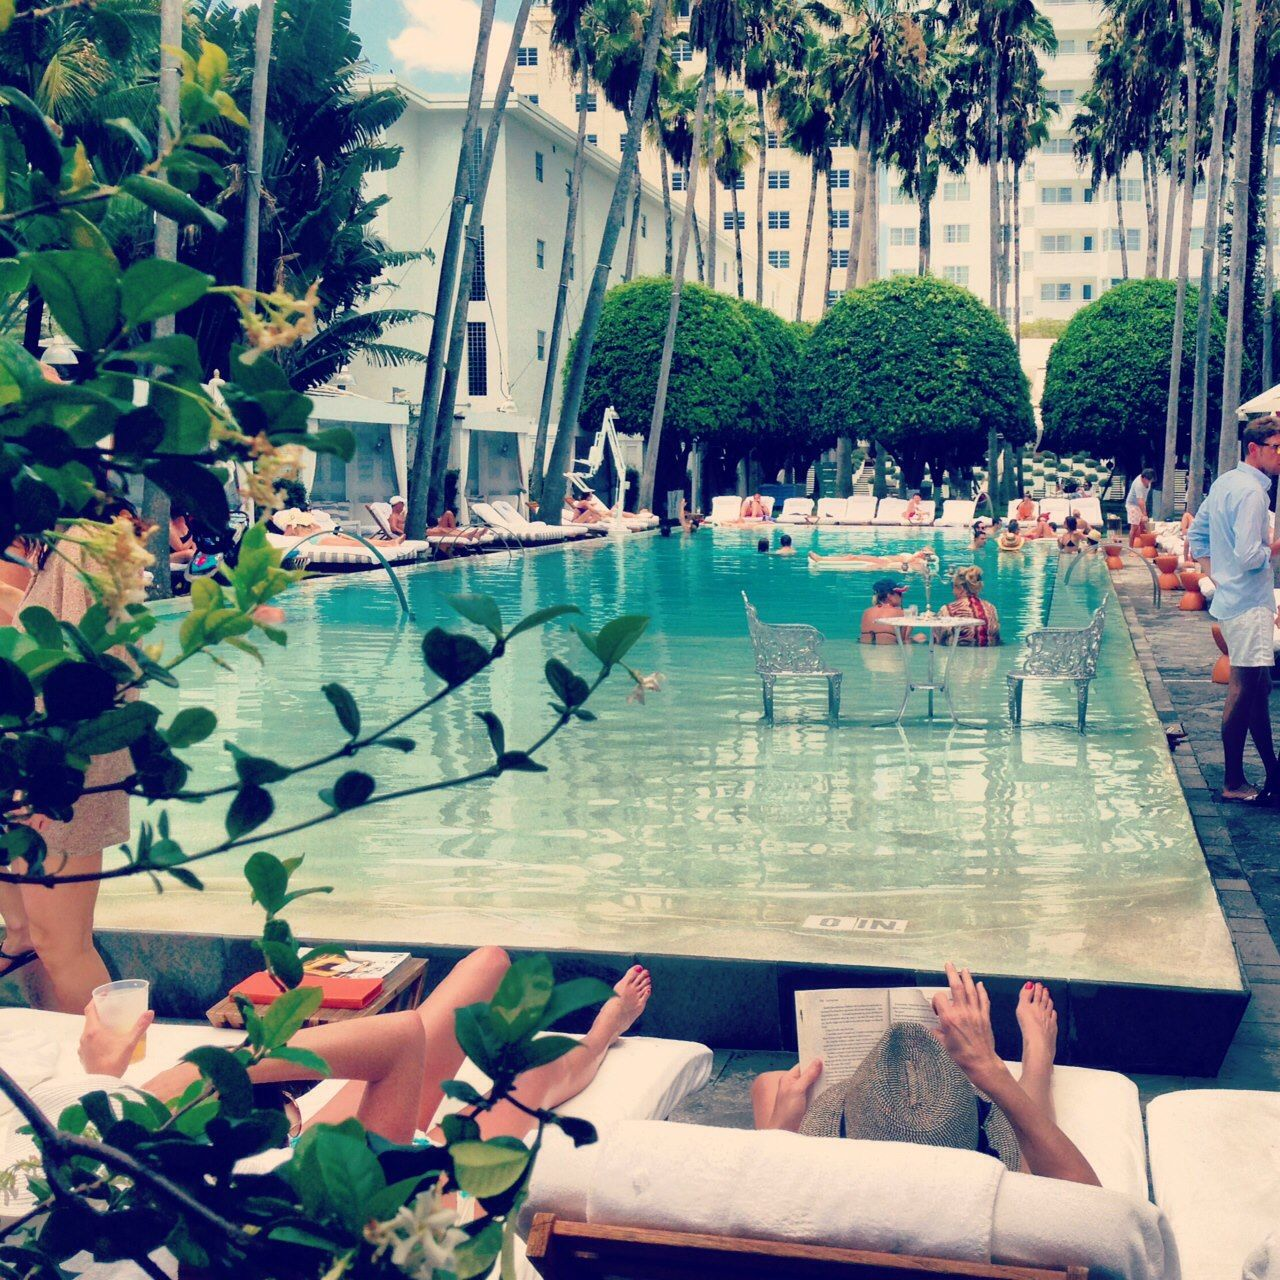 Delano   South Beach; we have to visit the bar here!